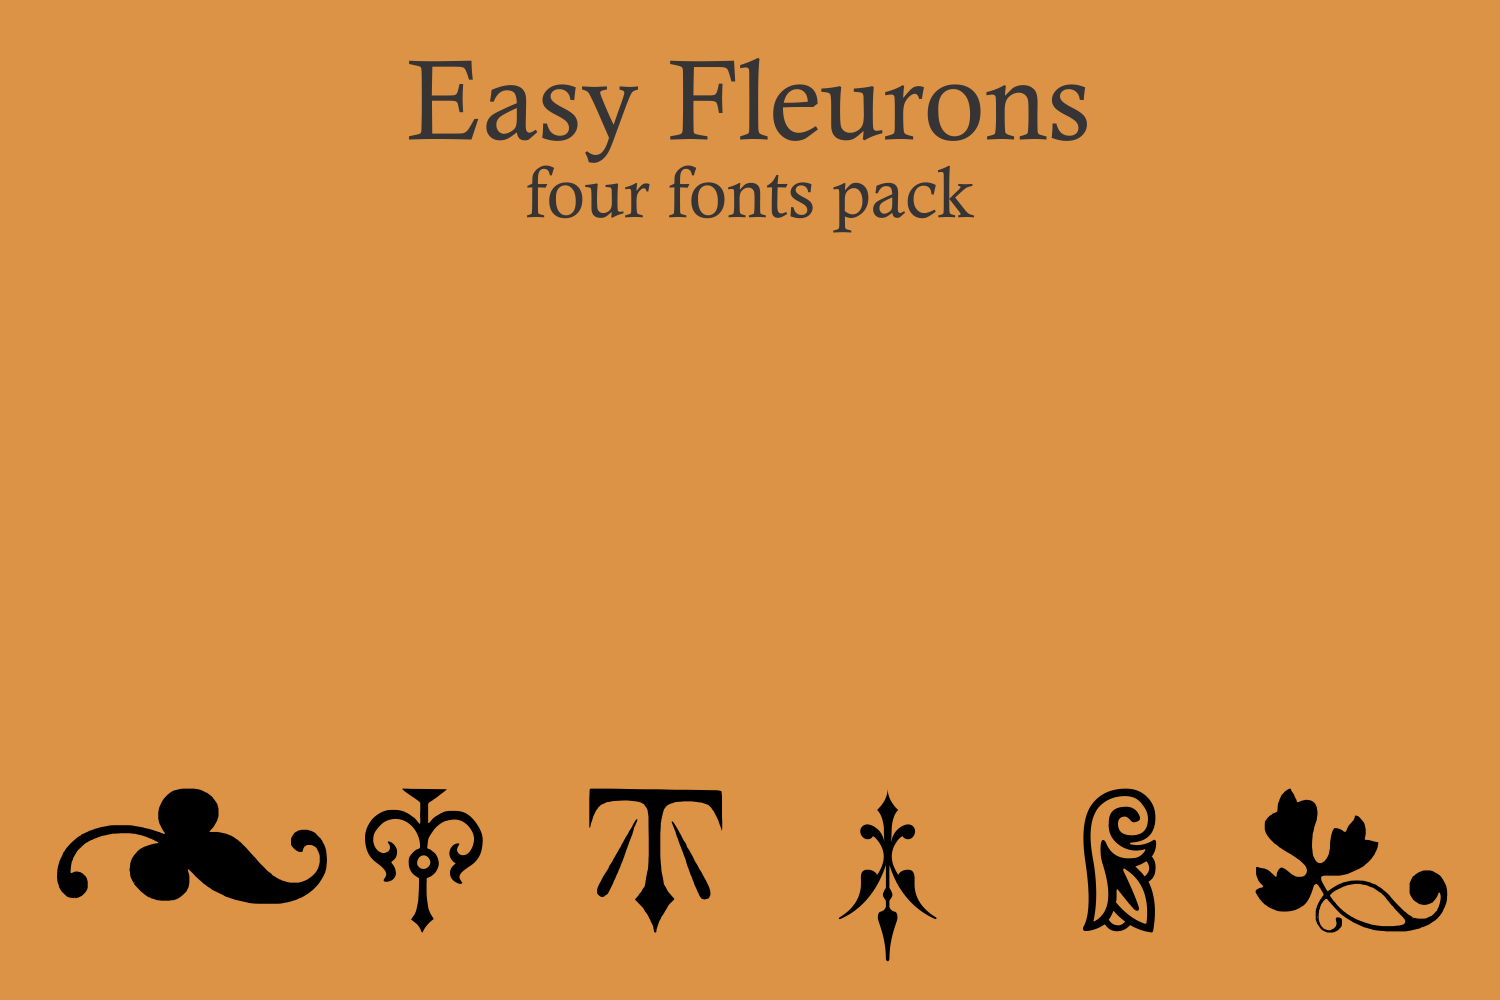 Easy Fleurons Pack (four fonts) example image 5